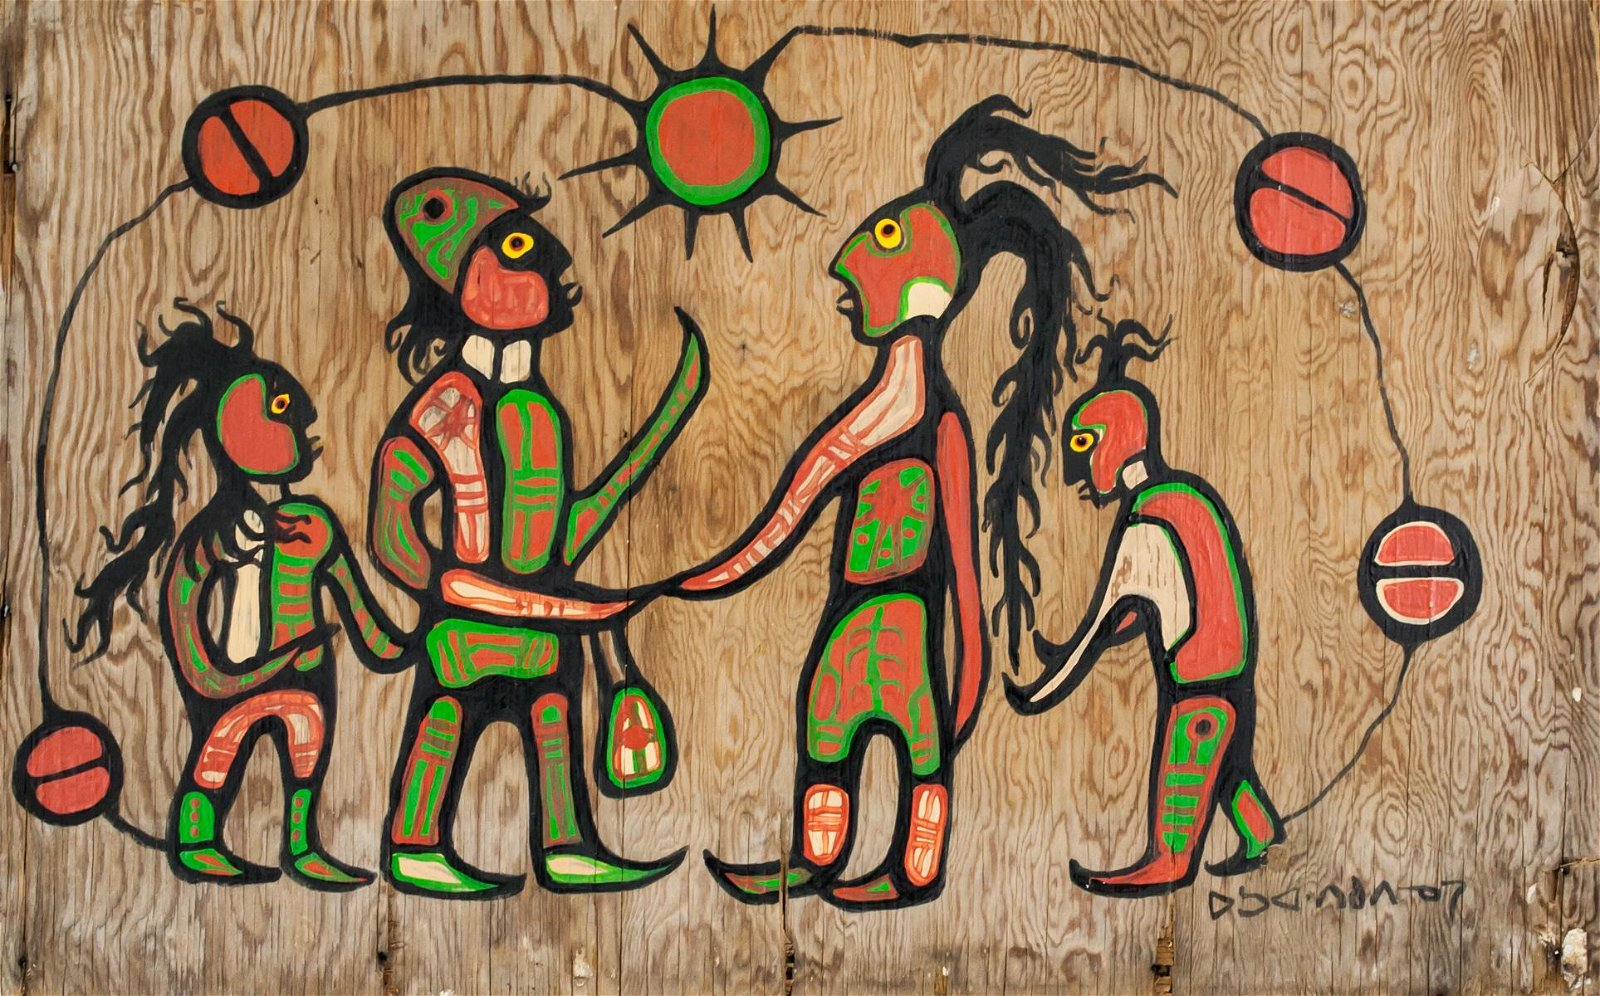 Norval Morrisseau 1932-2007 Canadian Acrylic Wood